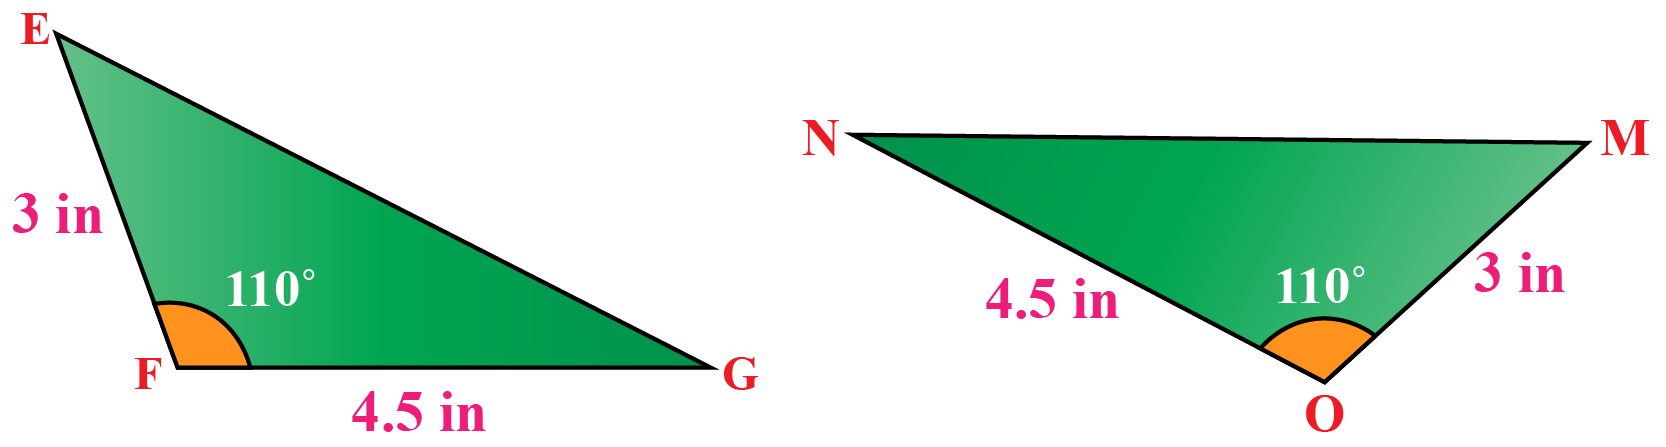 congruence triangle examples